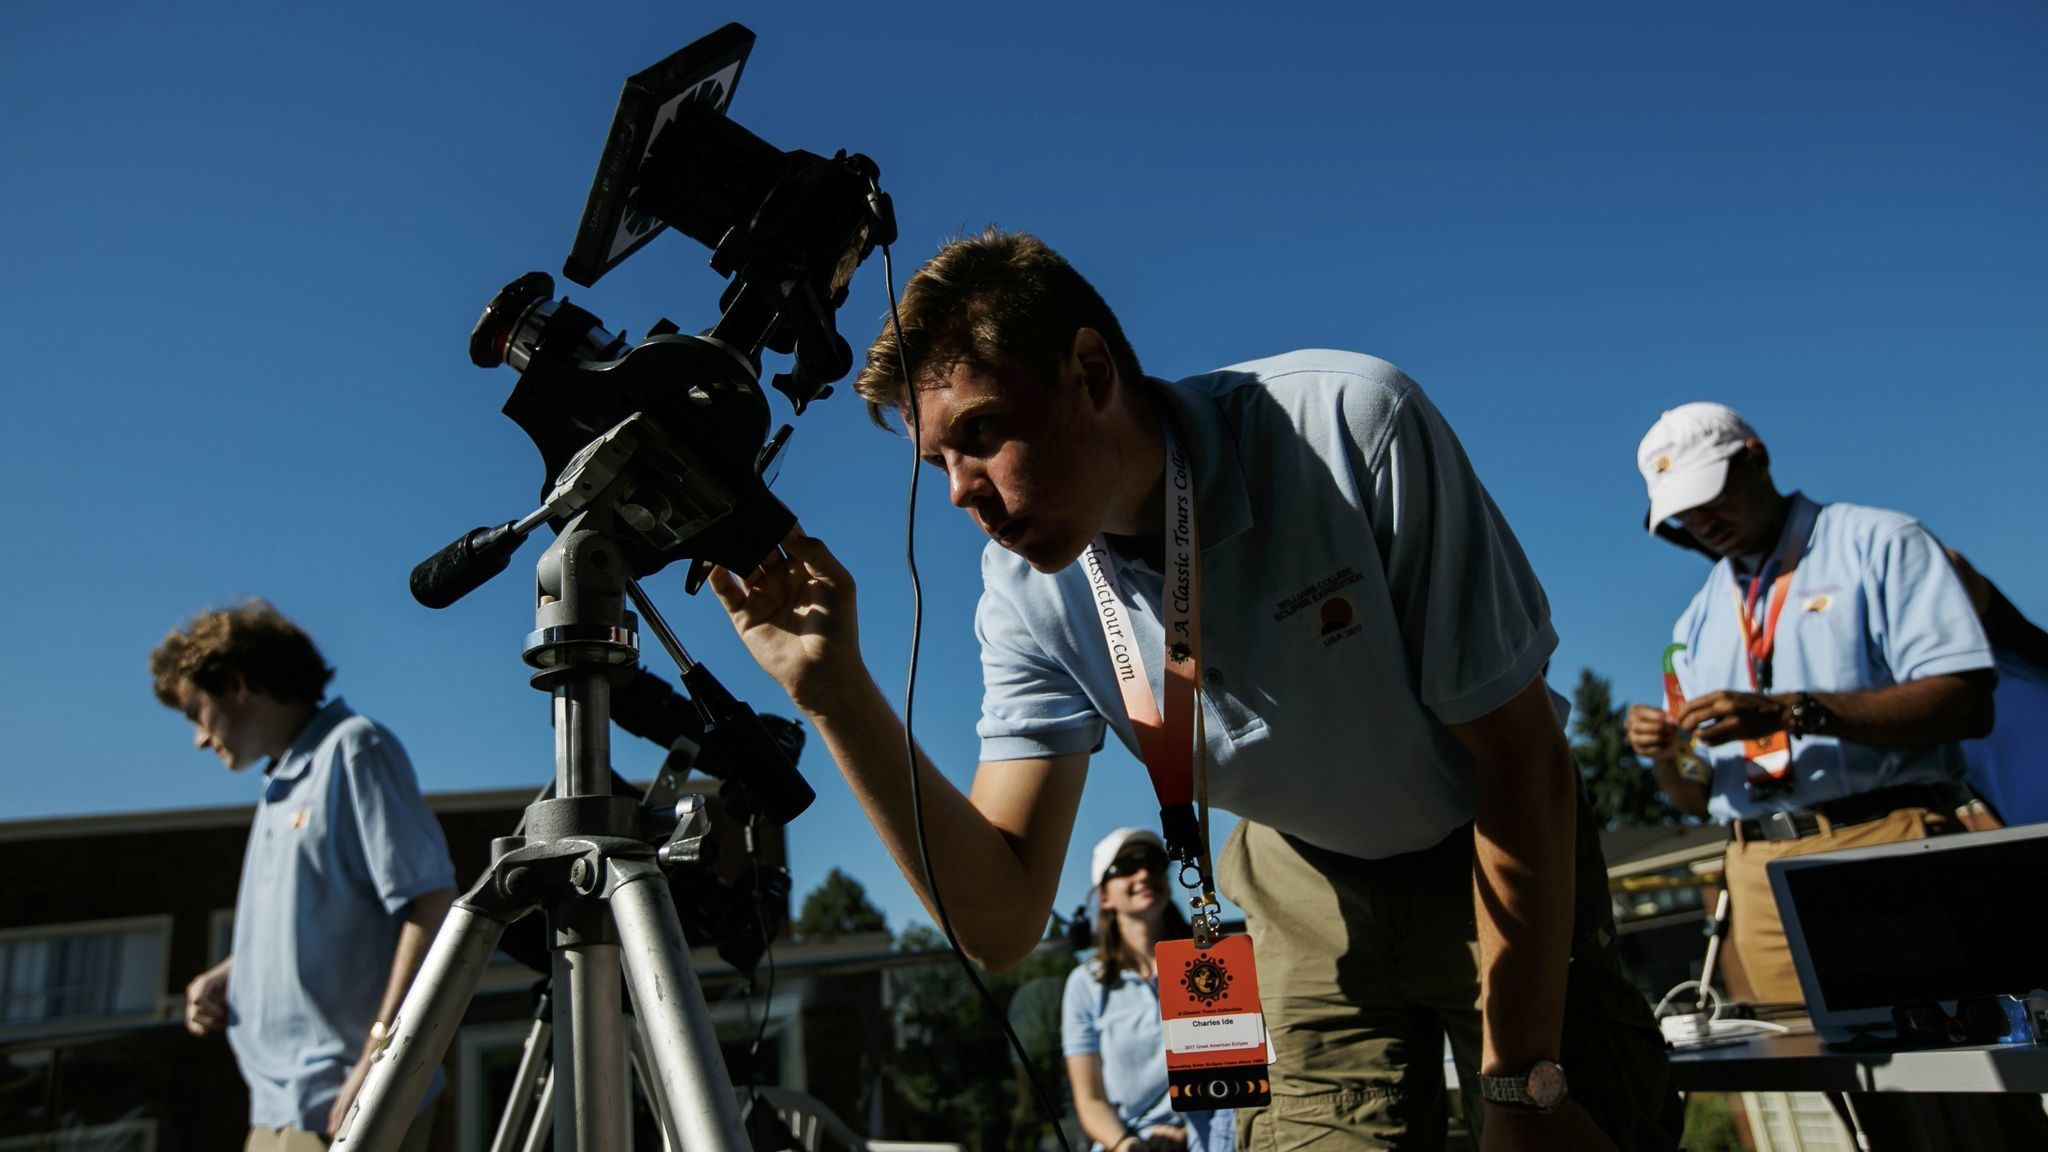 Students from Williams College accompany Jay Pasachoff as he leads the solar eclipse observation in Salem, Ore.